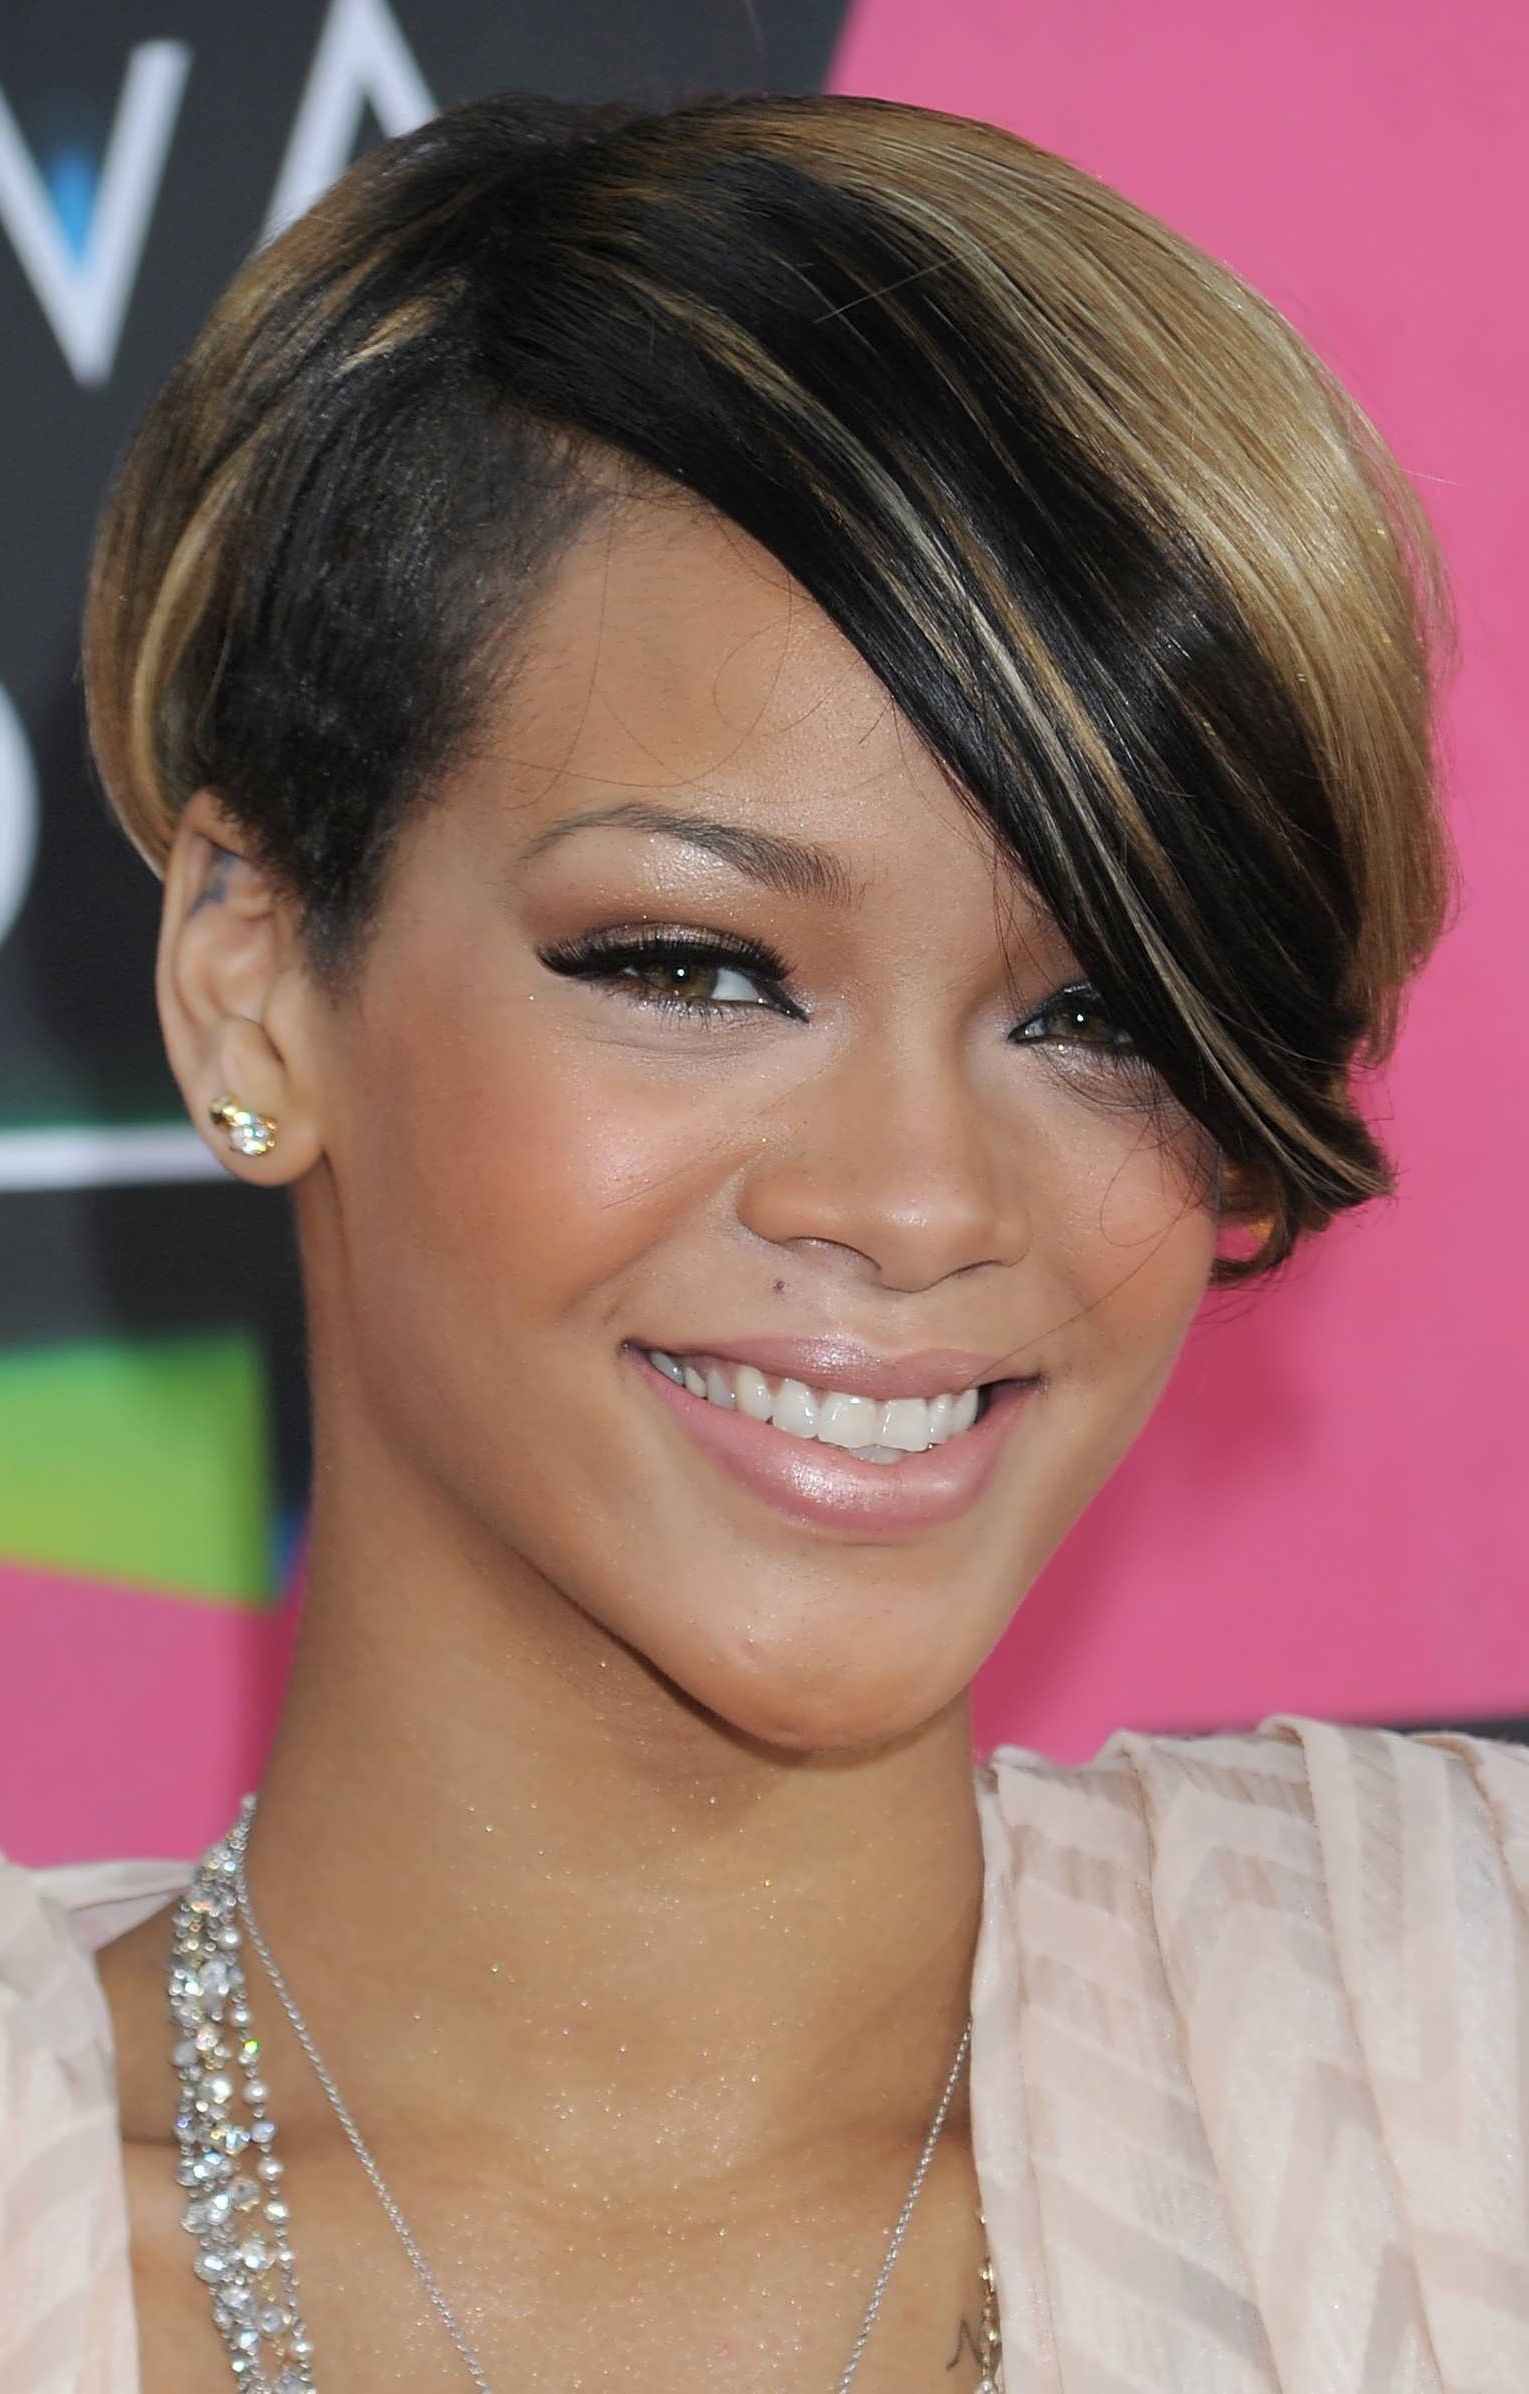 50 African American Short Black Hairstyles / Haircuts For Women Intended For Black Short Hairstyles For Long Faces (View 12 of 25)